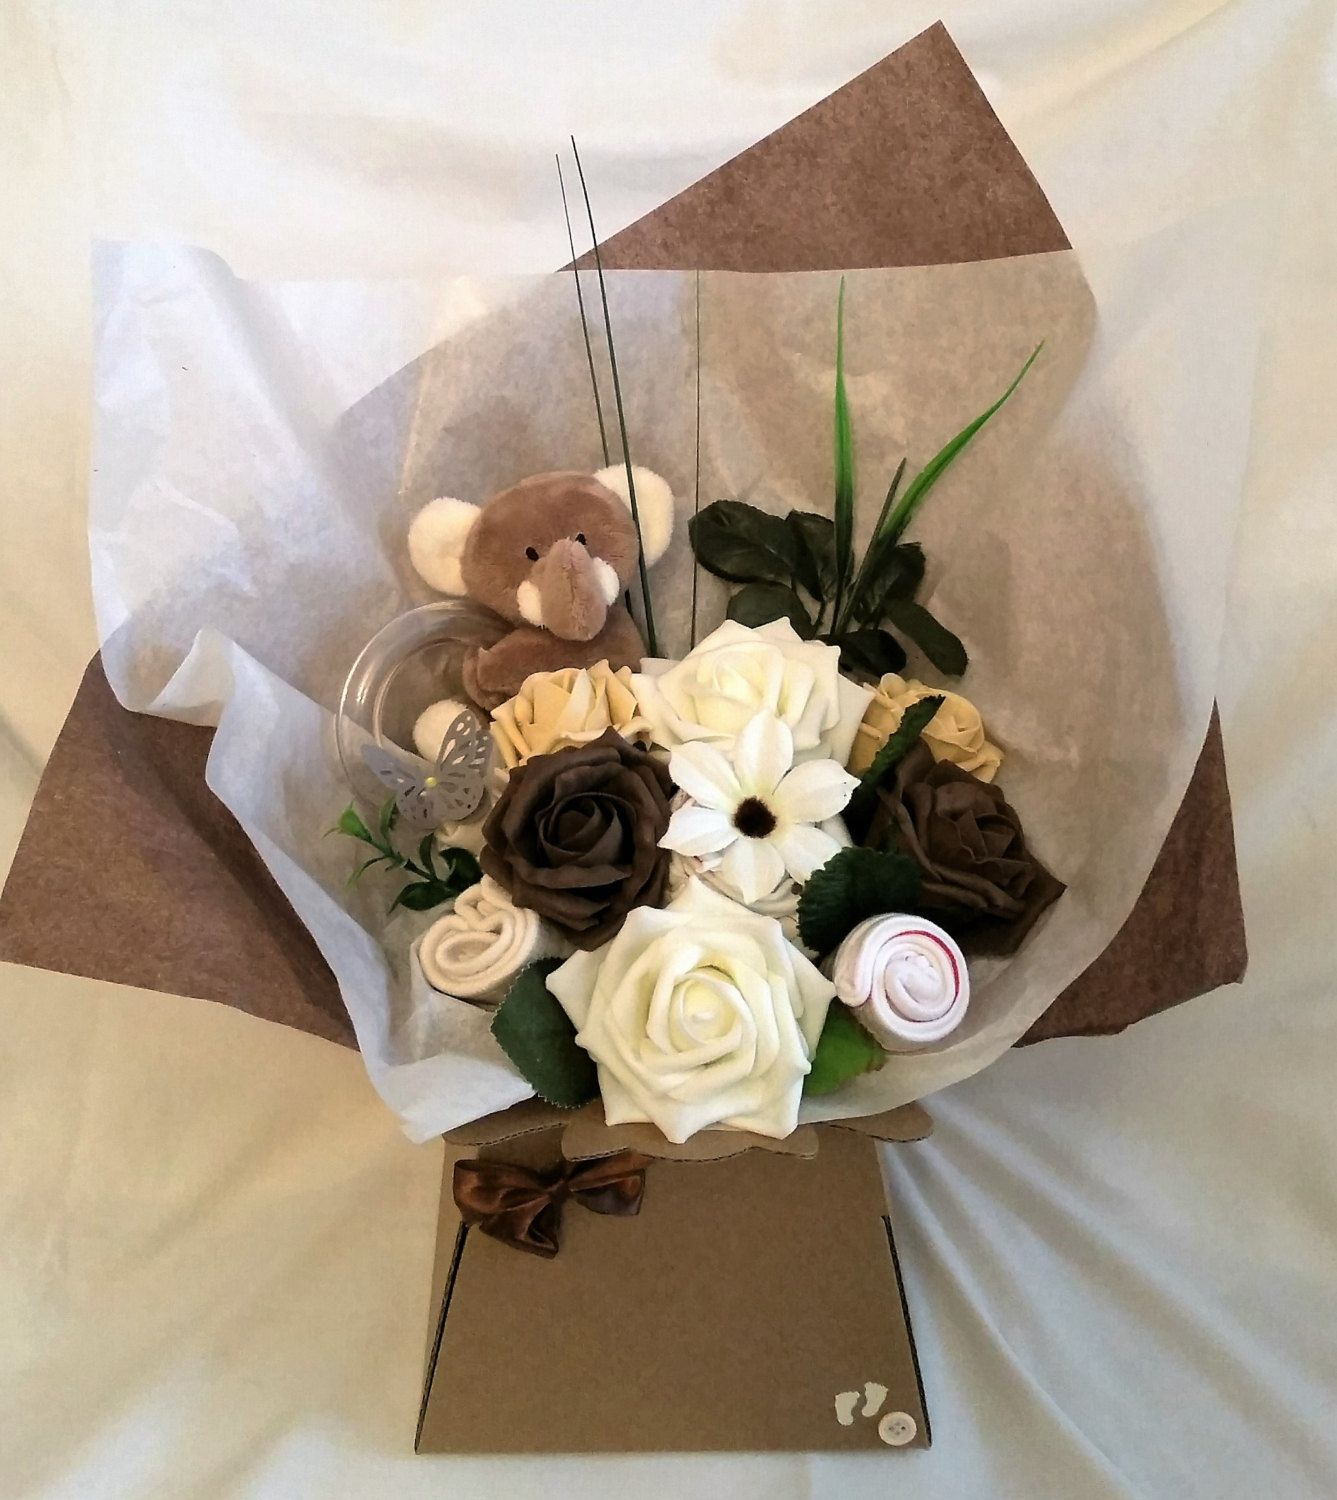 Neutral baby clothessock bouquet baby shower new baby gift neutral baby clothessock bouquet baby shower new baby gift maternity negle Gallery